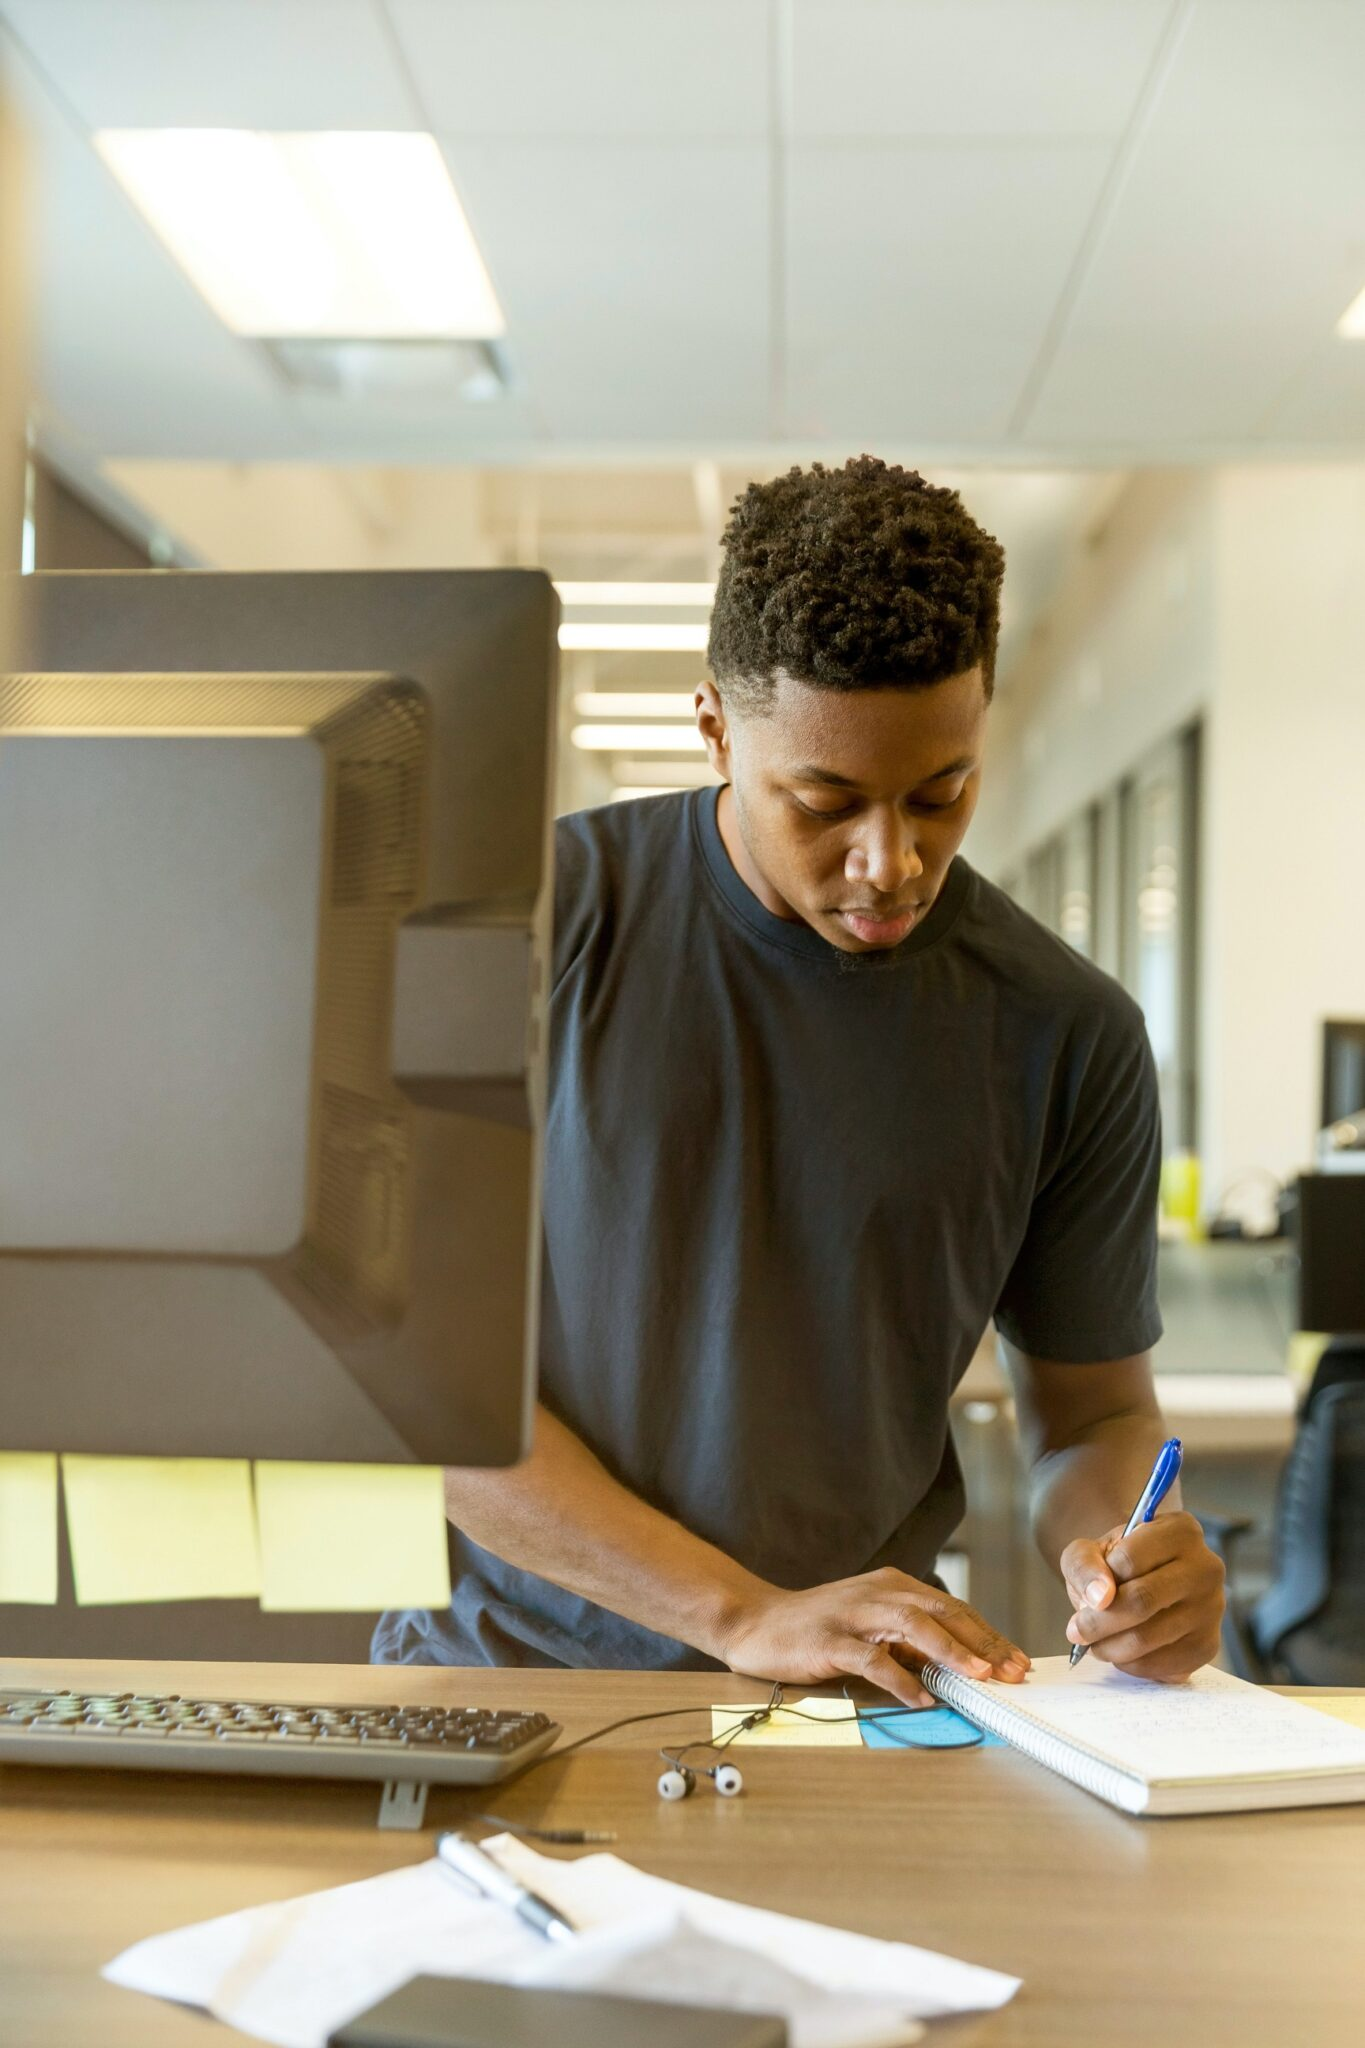 Intern working at a standing desk in front of his computer, writing in a notebook.